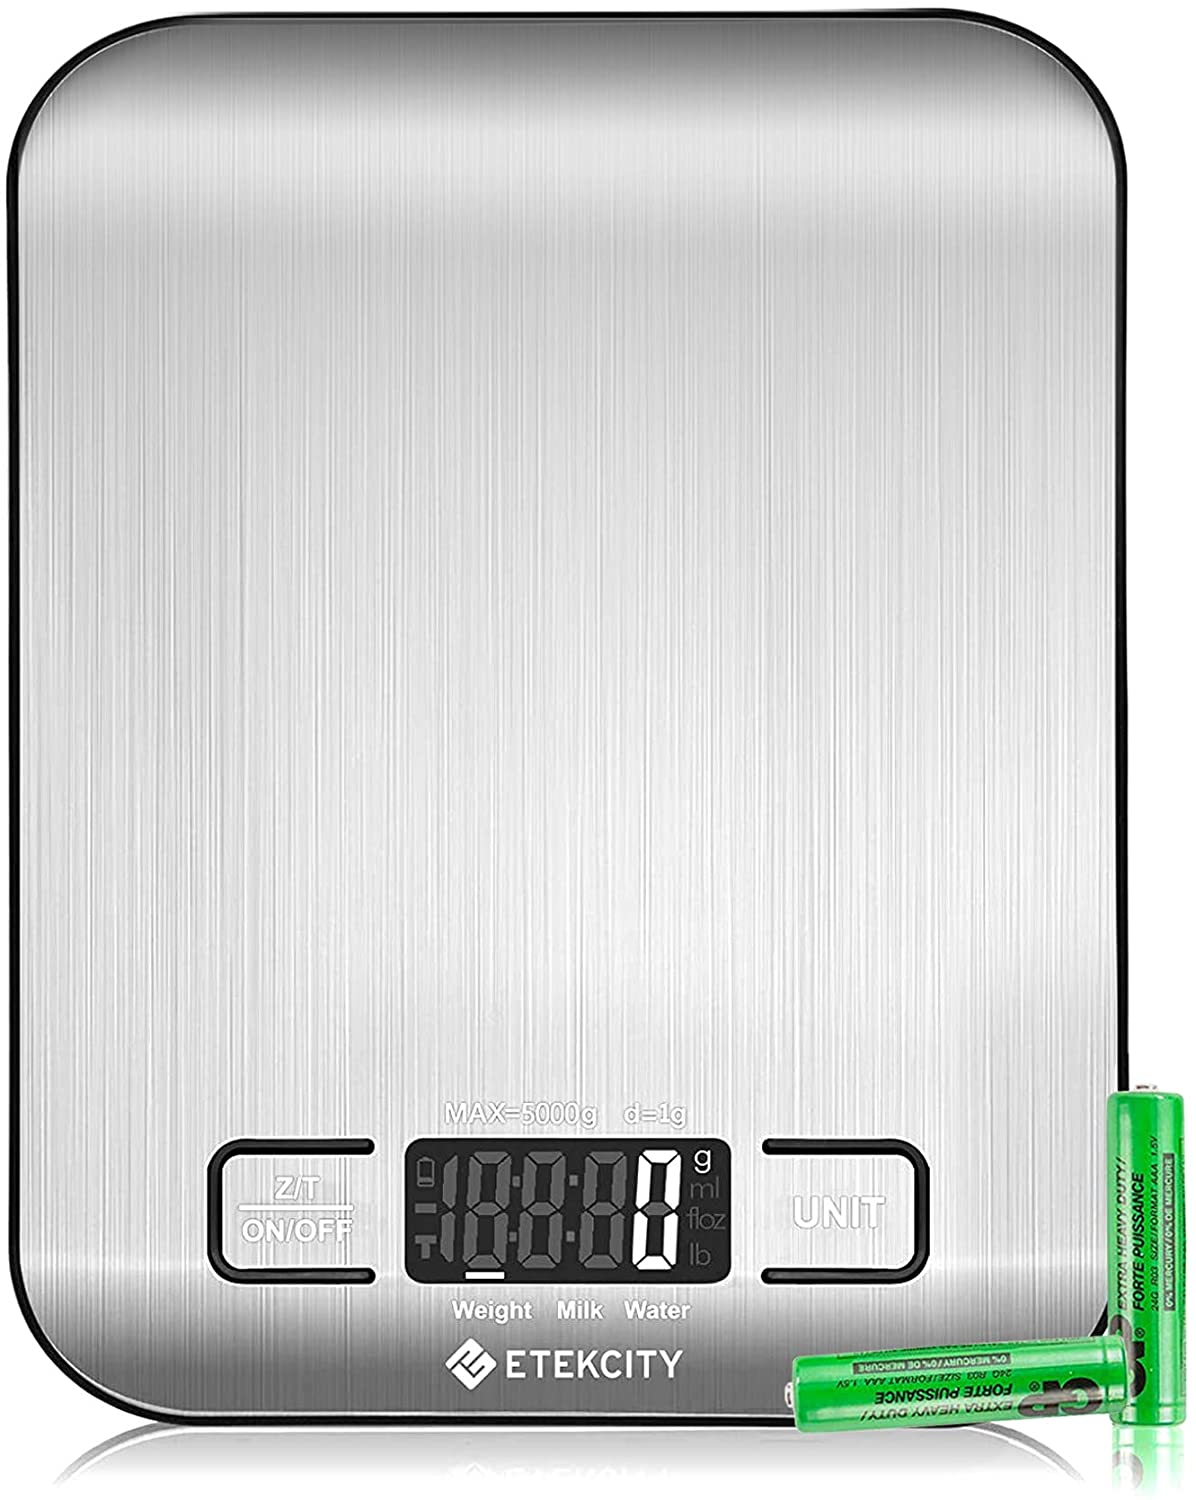 Save 22% on Etekcity Kitchen Scale, Digital Grams and Ounces for Weight